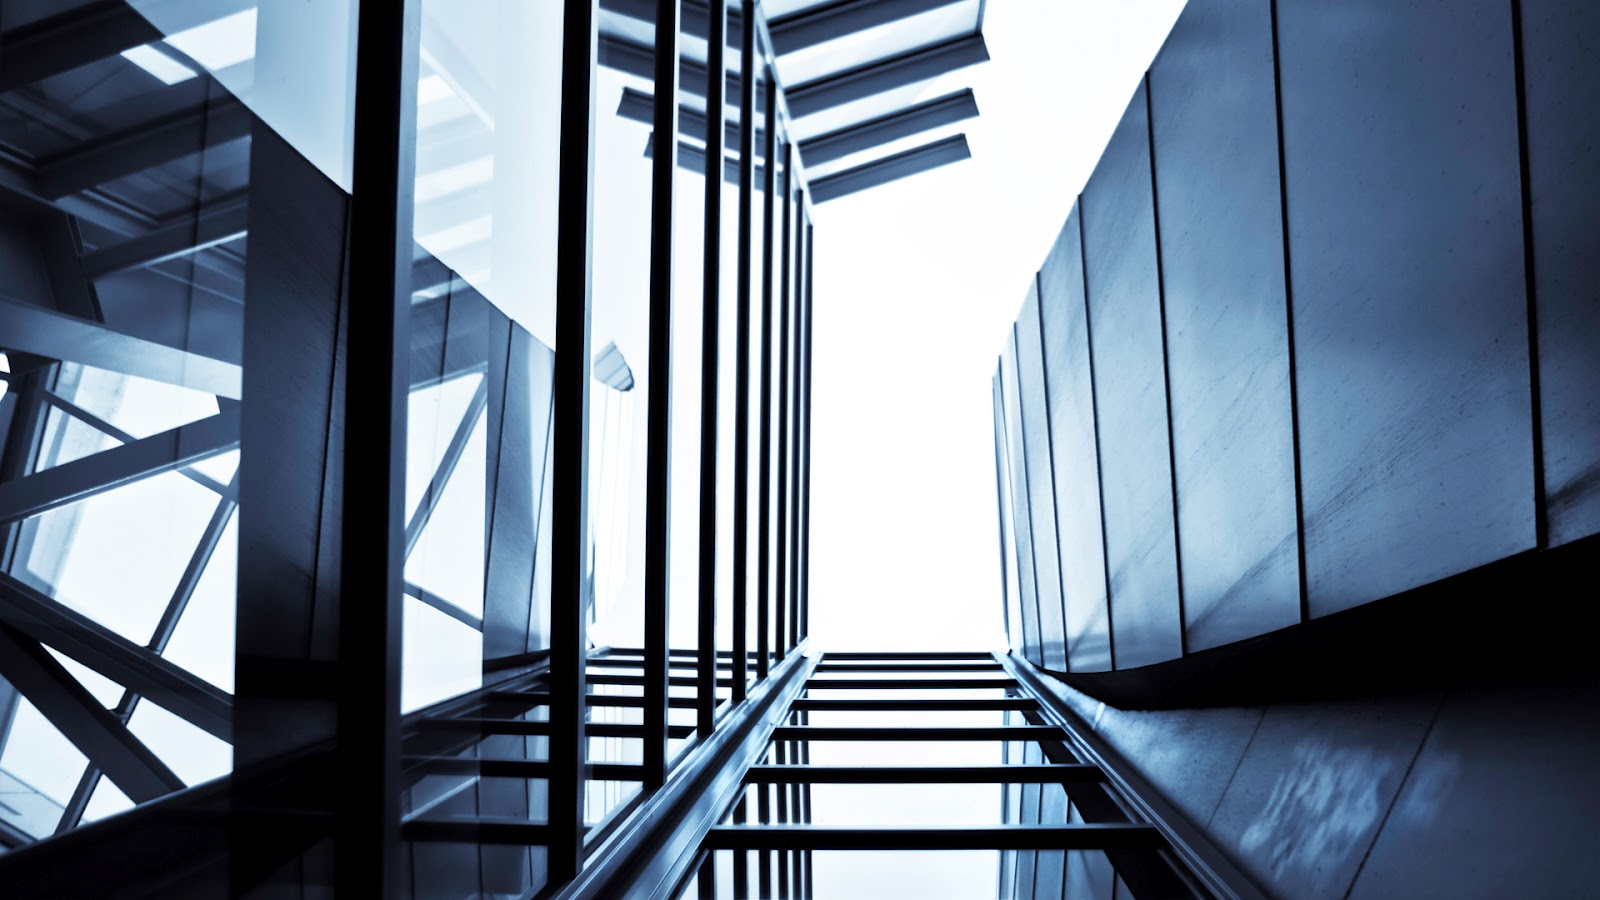 Hd architecture wallpapers wallpapersafari for Www architecture